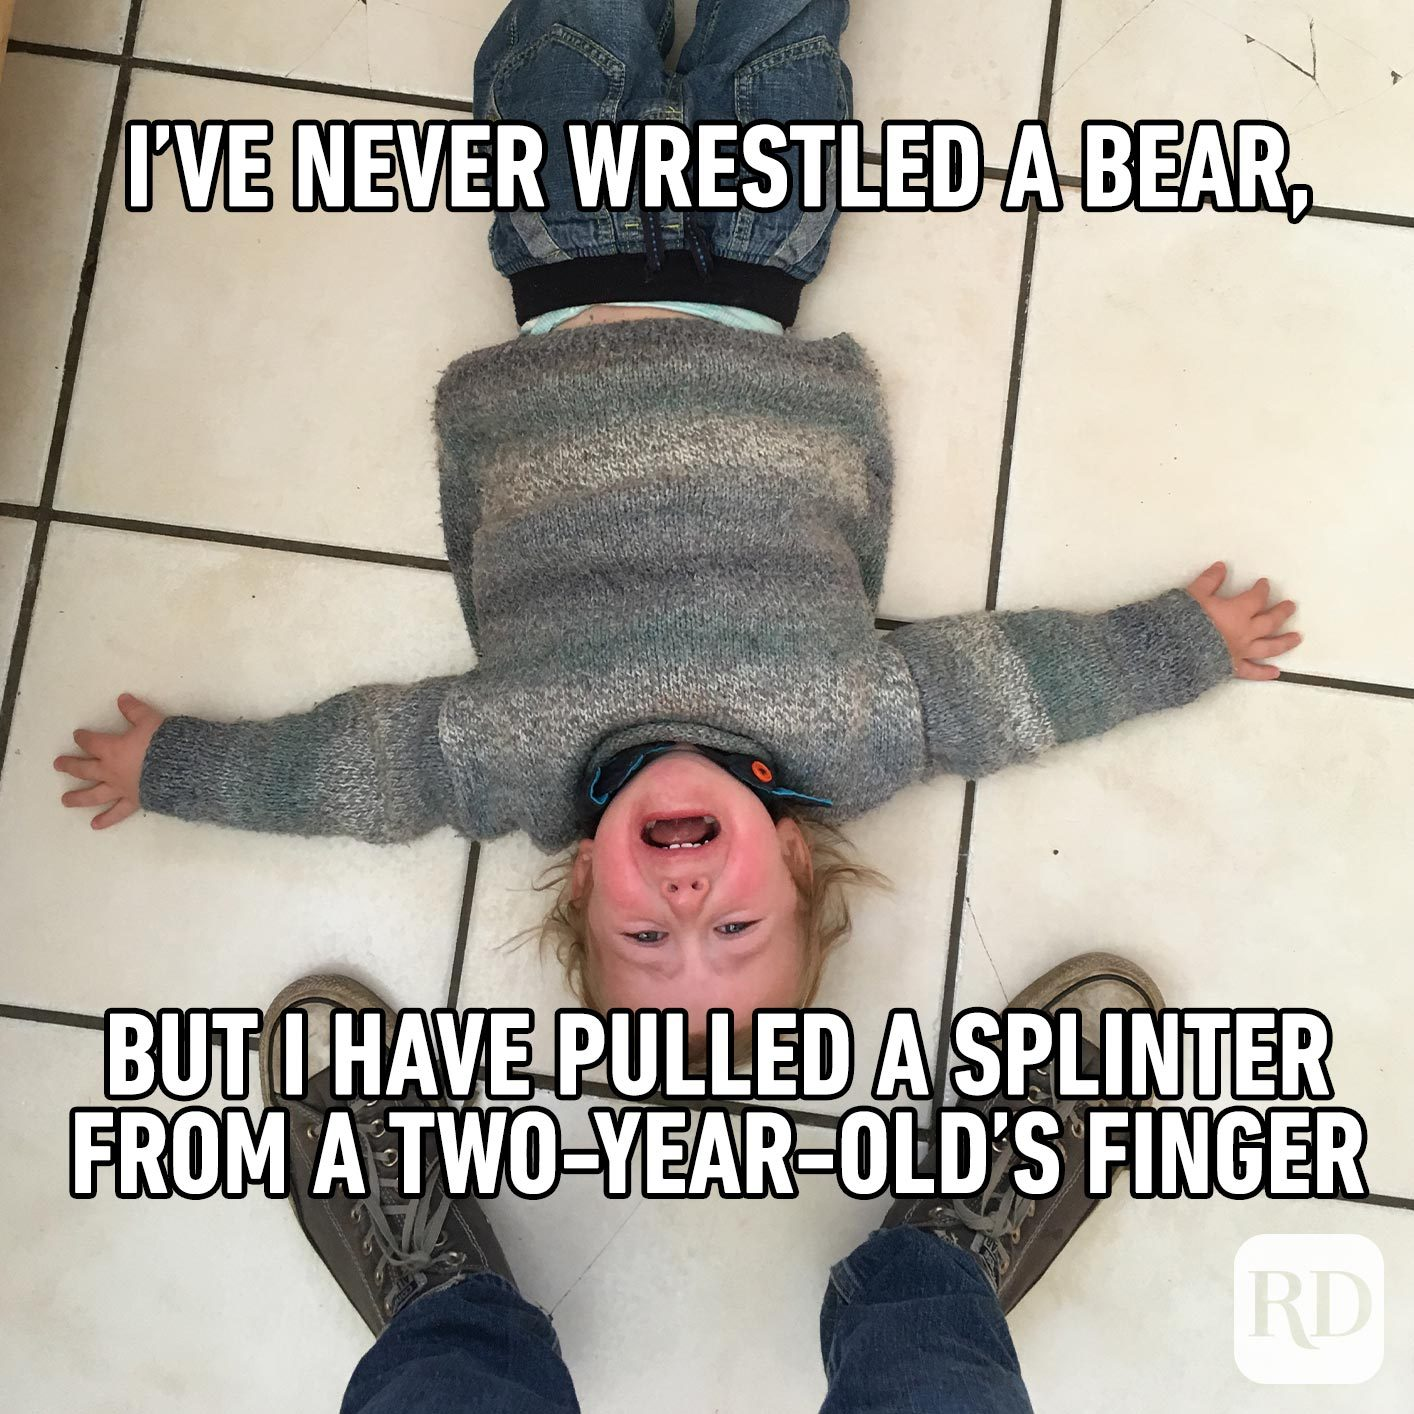 Child throwing tantrum on the floor. MEME TEXT: I've never wrestled a bear, but I have pulled a splinter from a two-year-old's finger